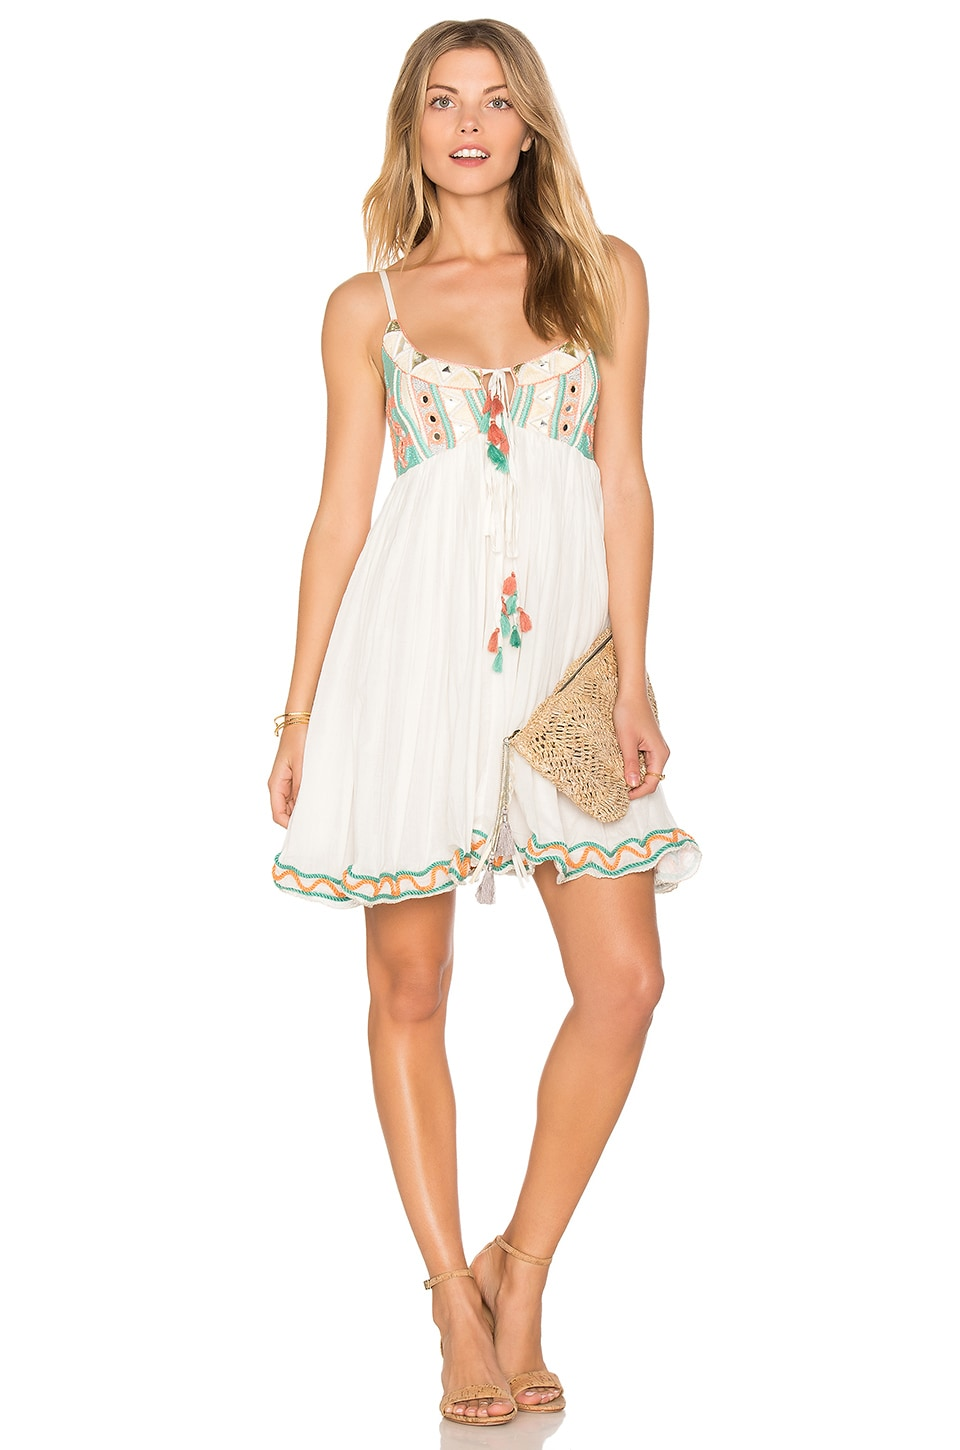 Raga Coastland Babydoll Dress in Aqua